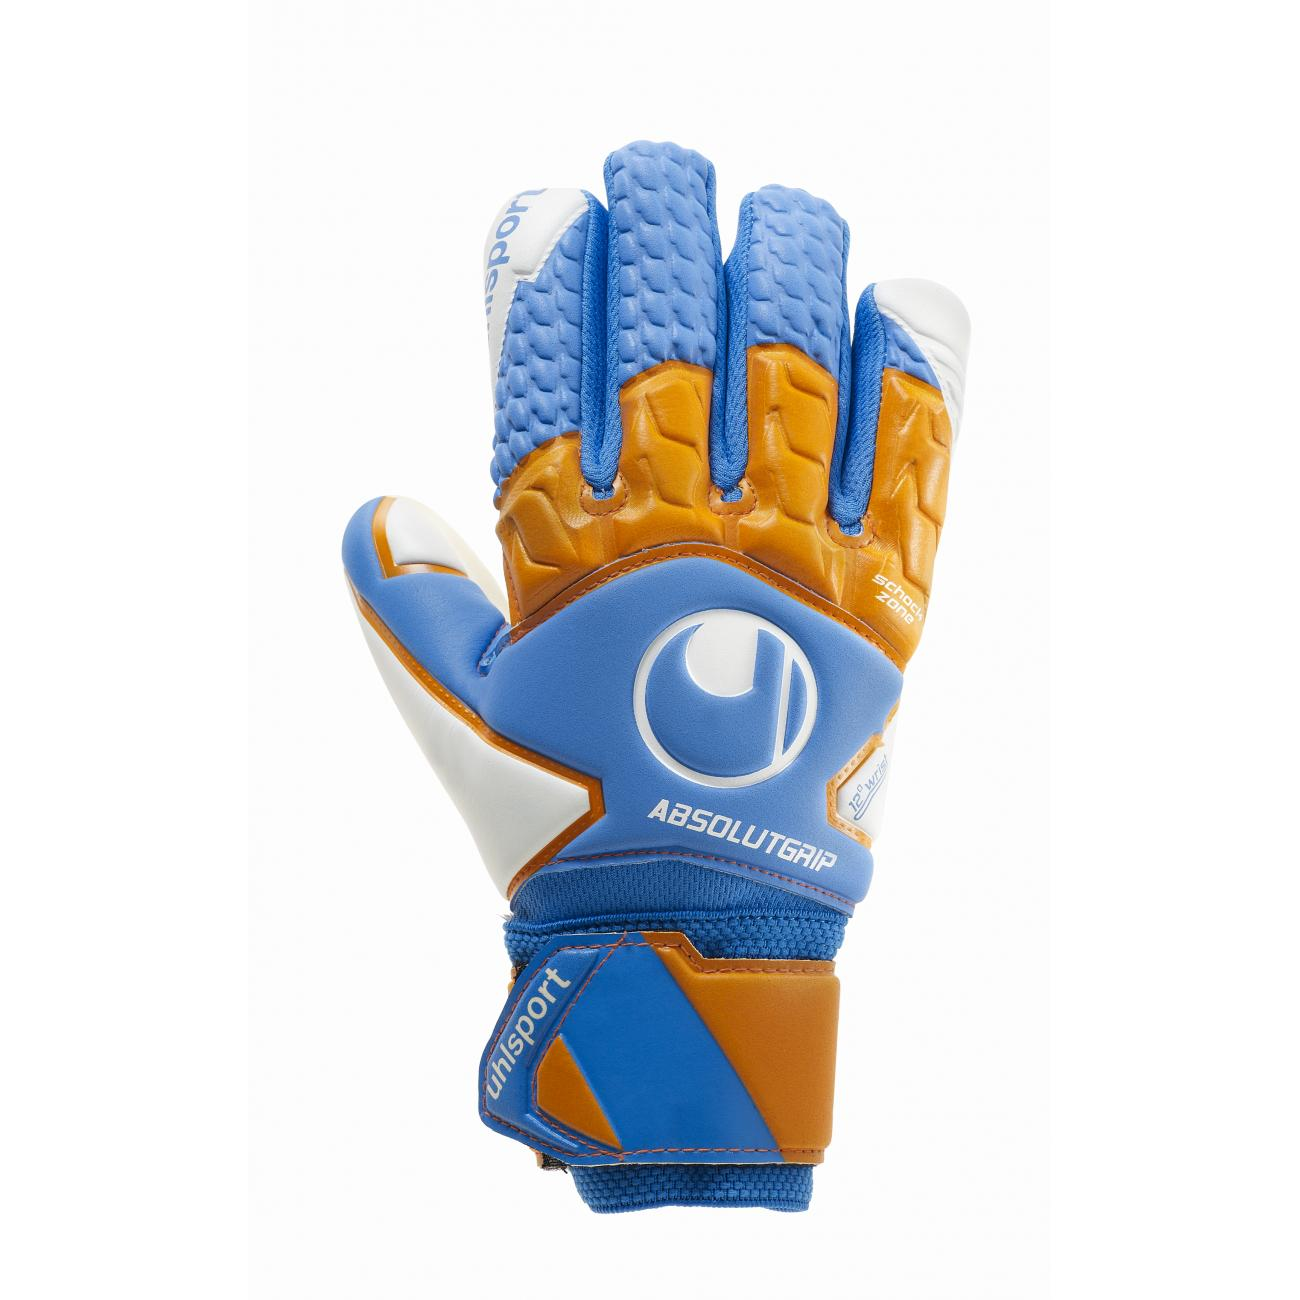 Uhlsport Absolutgrip HN Pro Jr